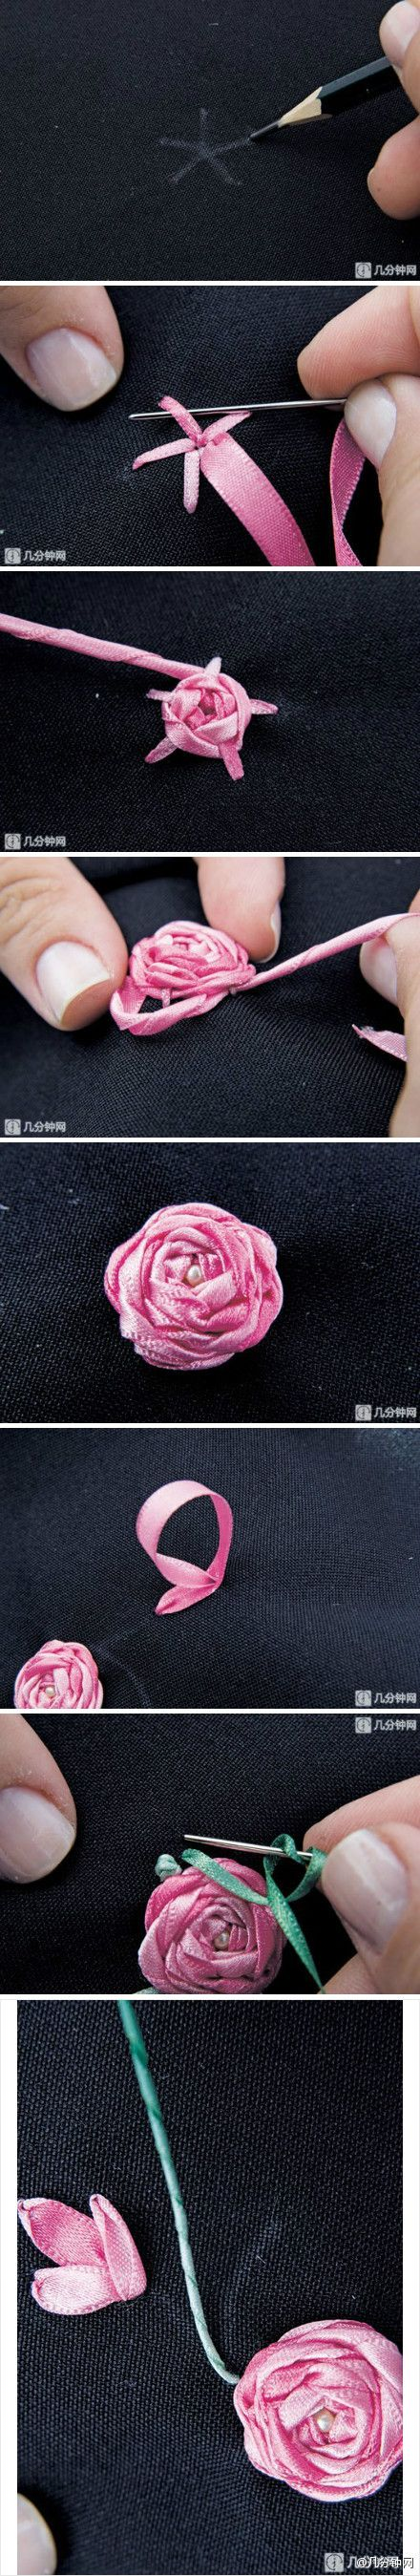 Pentagon roses embroidered handmade ribbon embroidery needle, video tutorial DIY